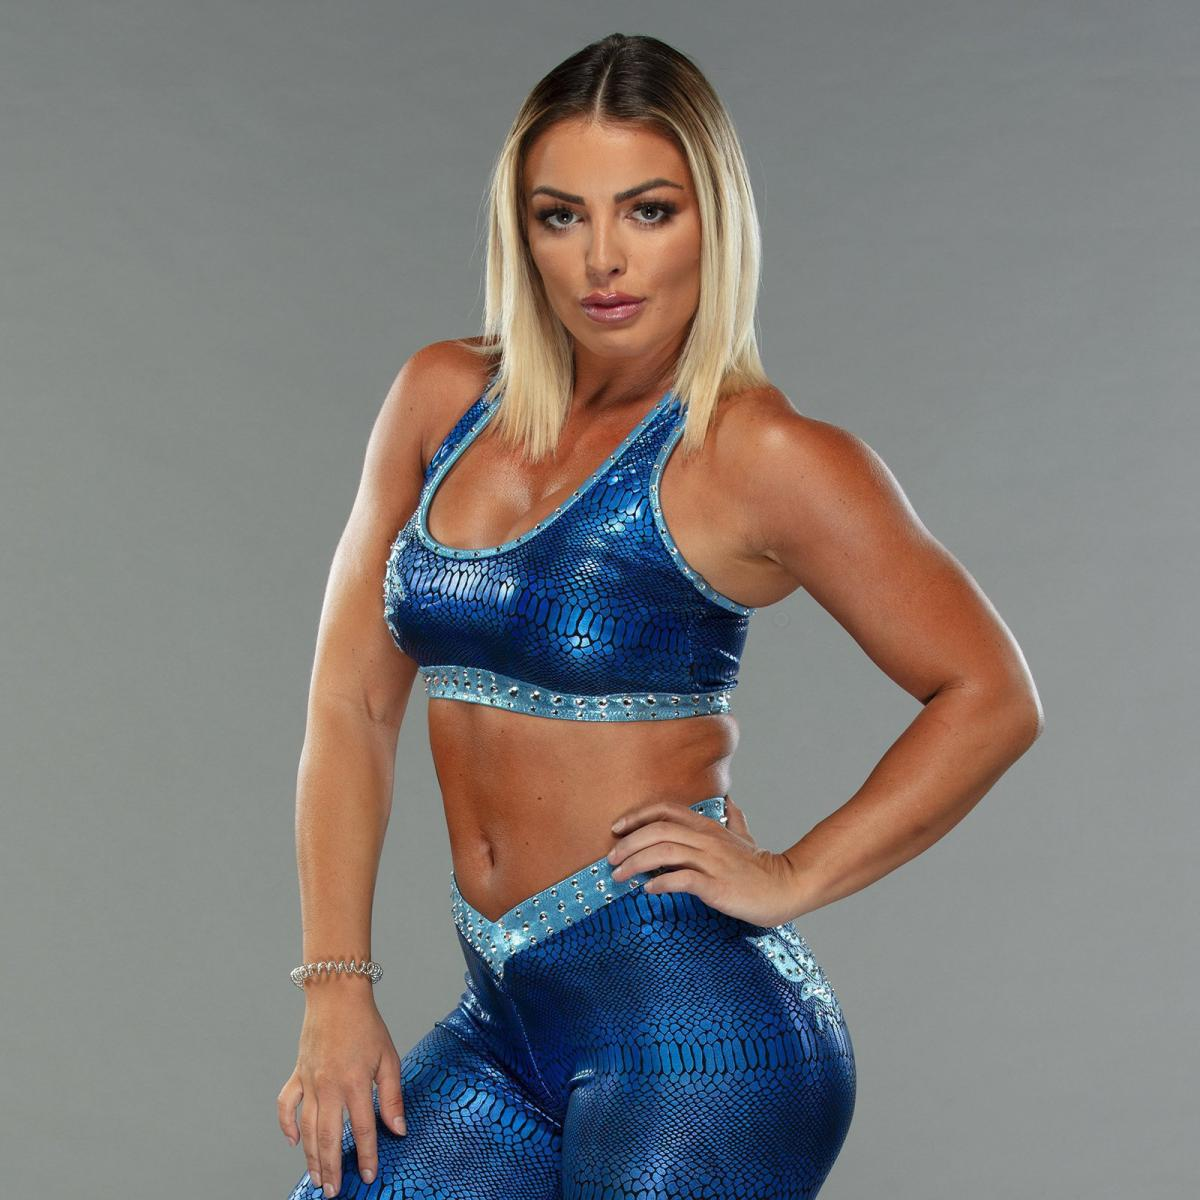 Mandy Rose: WWE Releases Photoshoot Pictures Of Golden Goddess' New Look 2